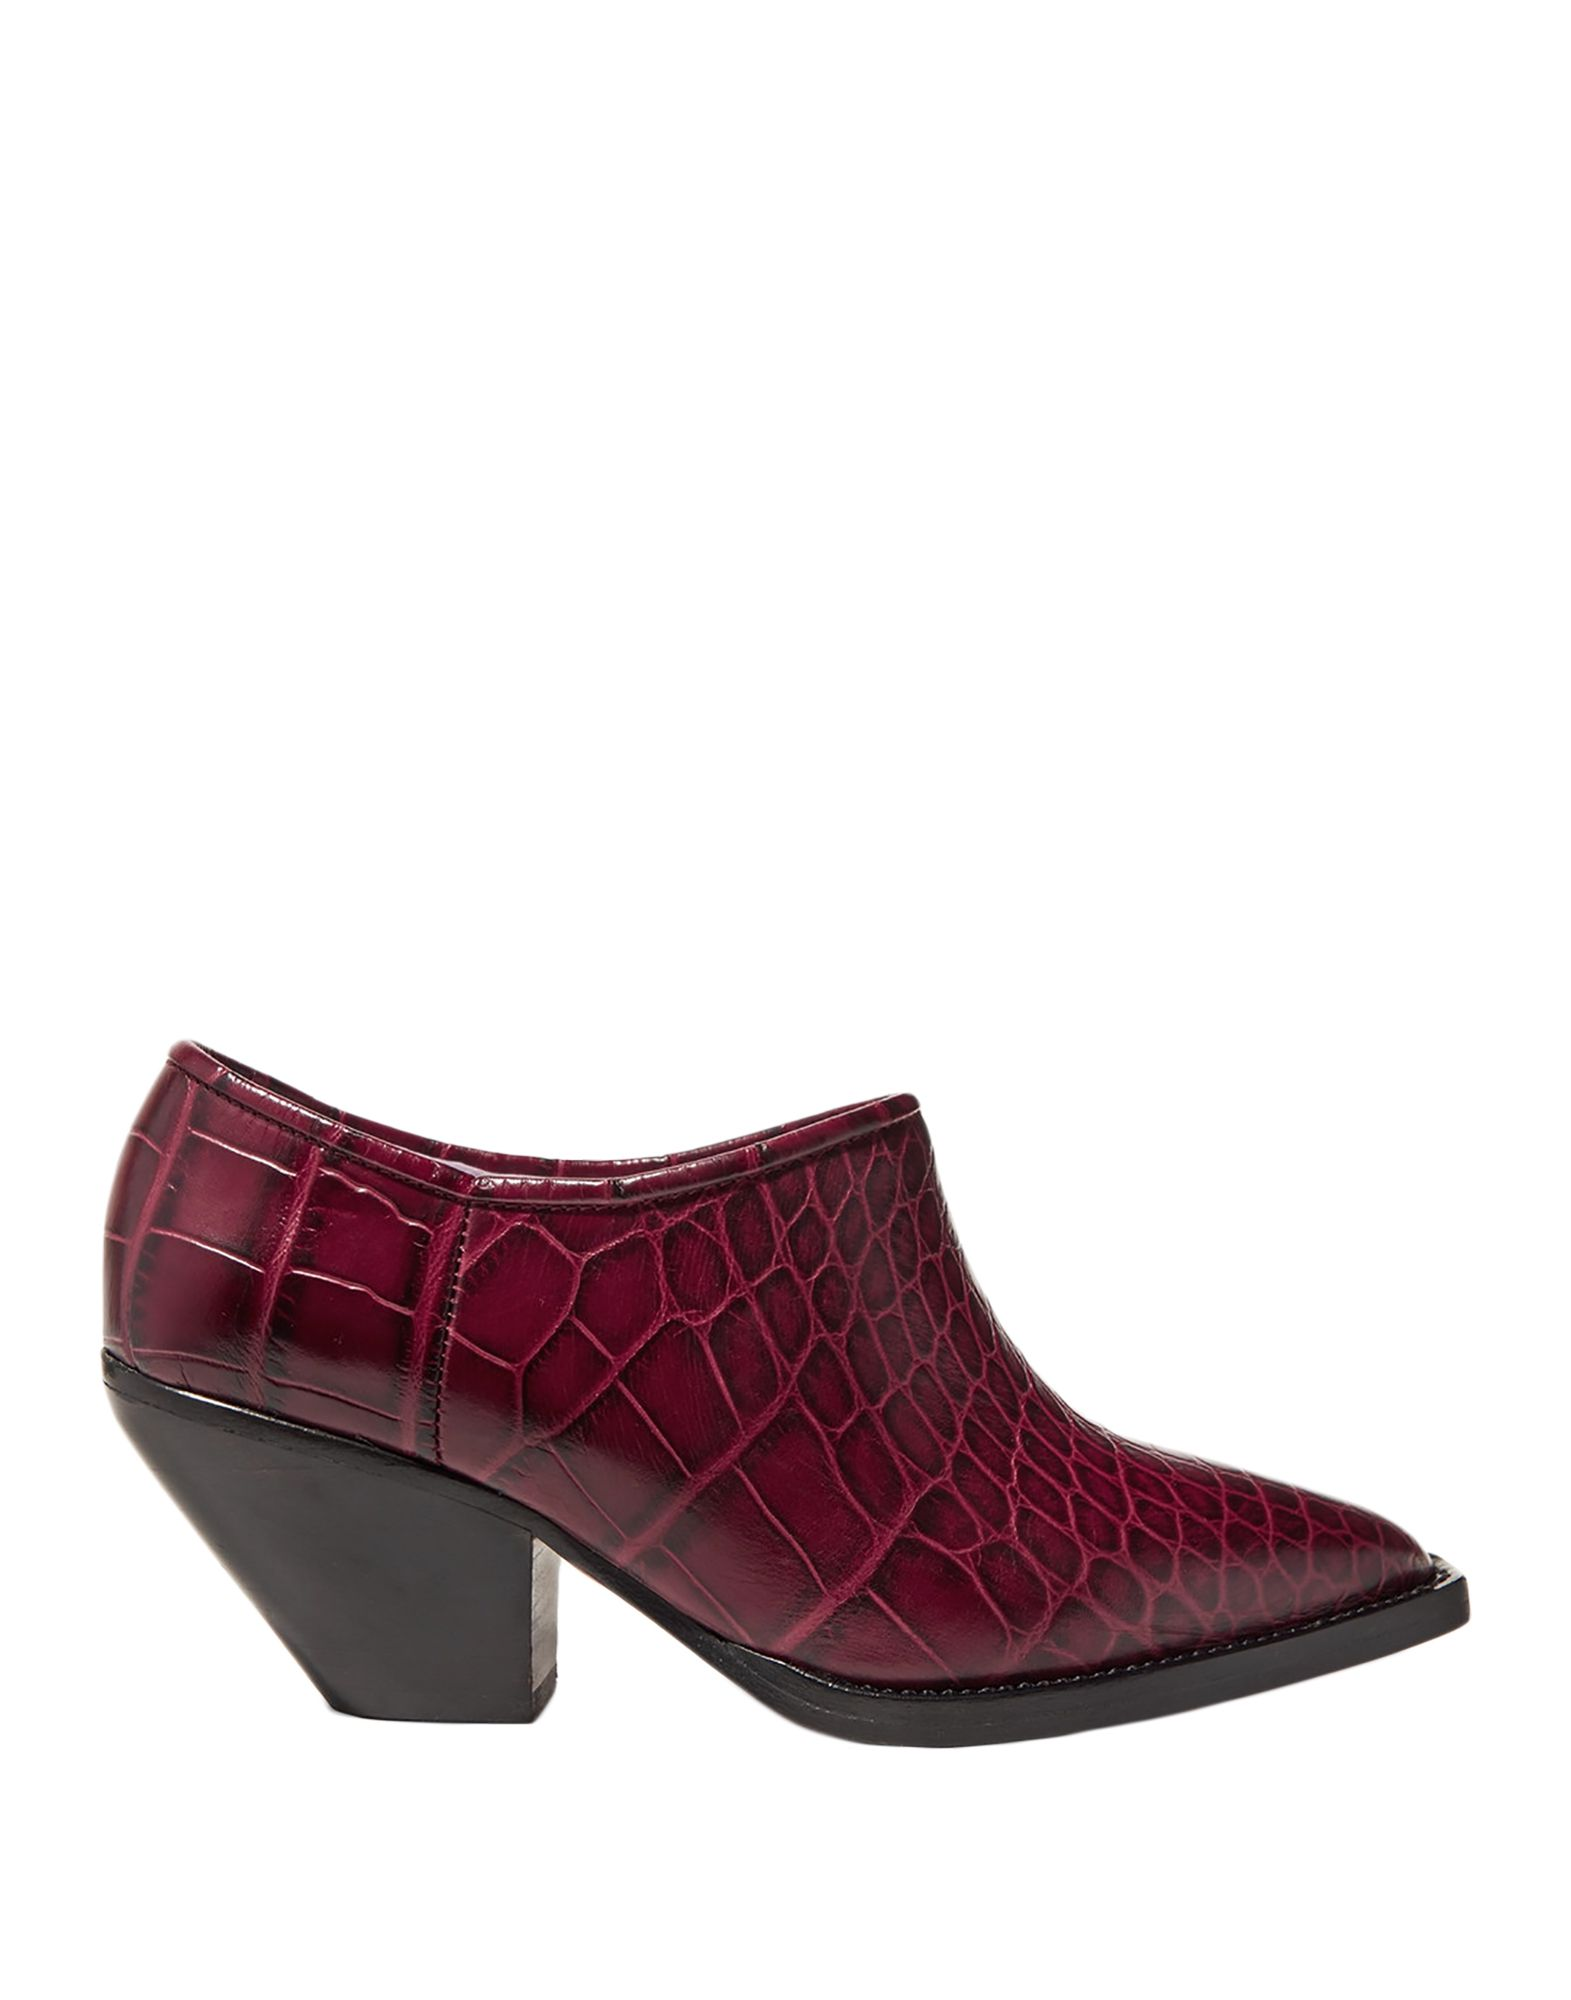 GANNI Booties. leather, crocodile print, no appliqués, solid color, narrow toeline, square heel, leather lining, leather sole, contains non-textile parts of animal origin, small sized. Soft Leather